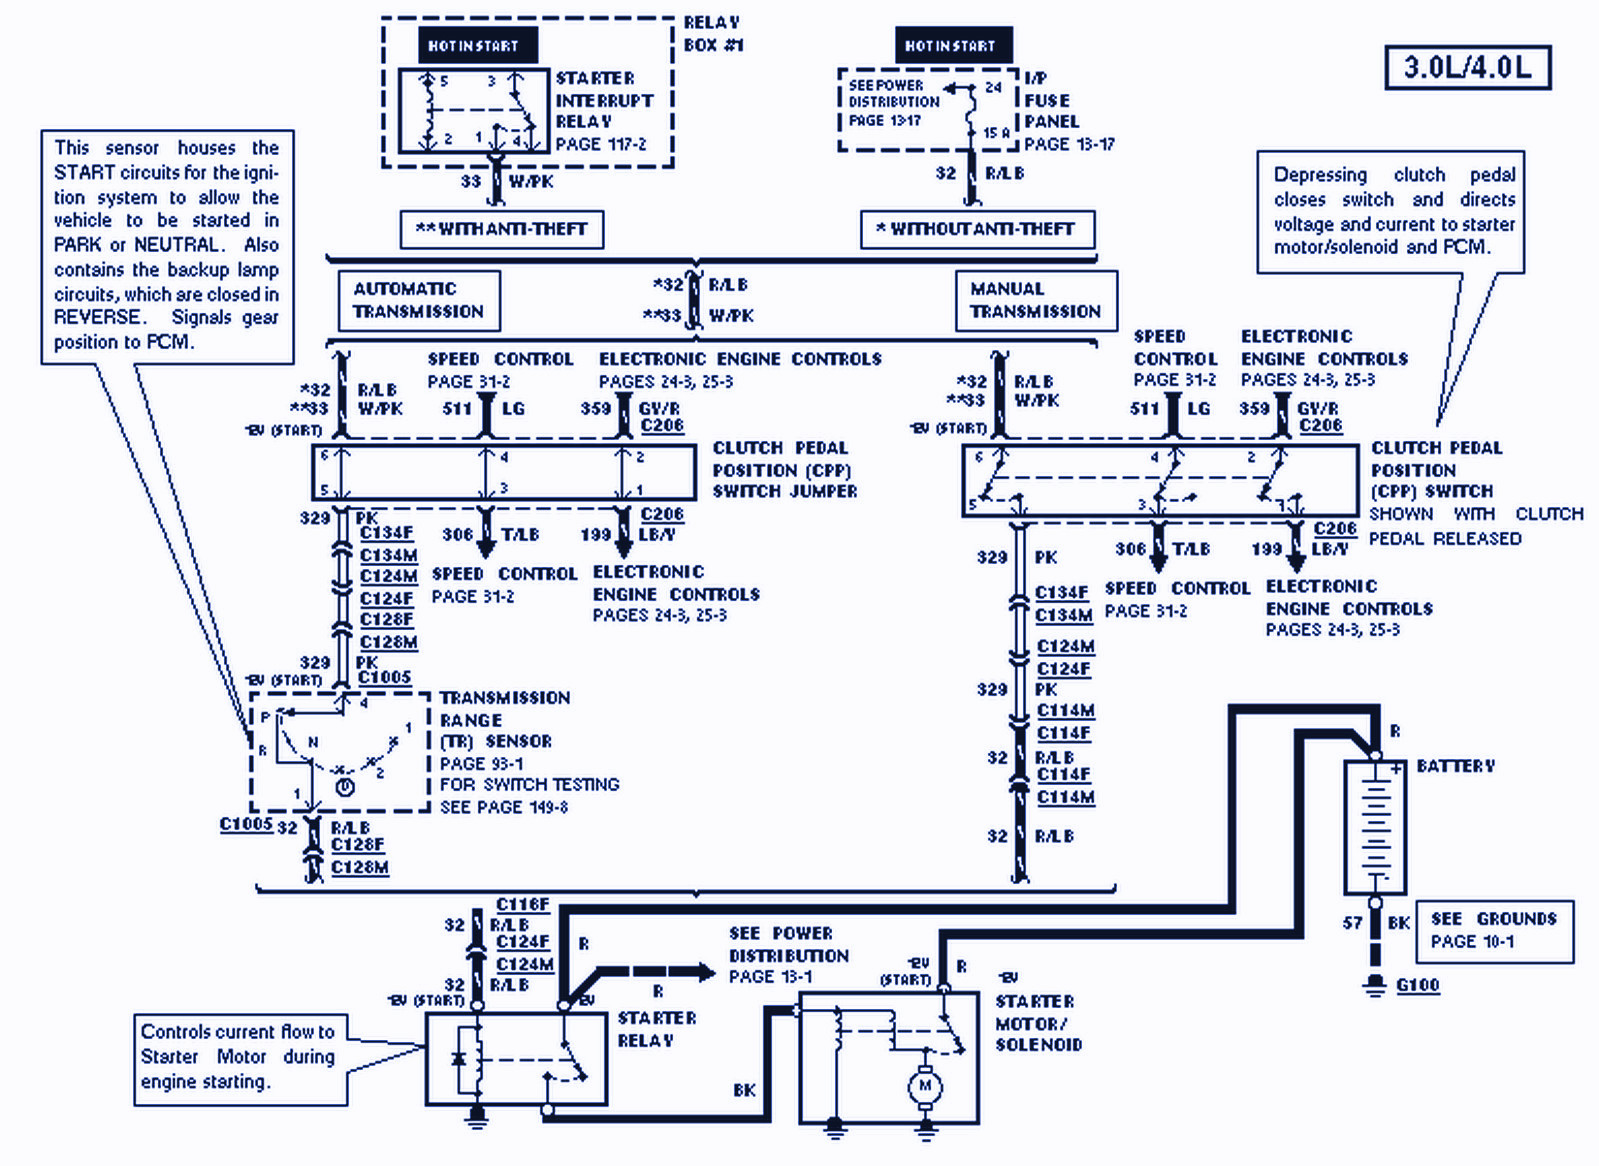 2004 ford e350 wiring diagram wiring diagram article  2004 ford e350 wiring diagram #7